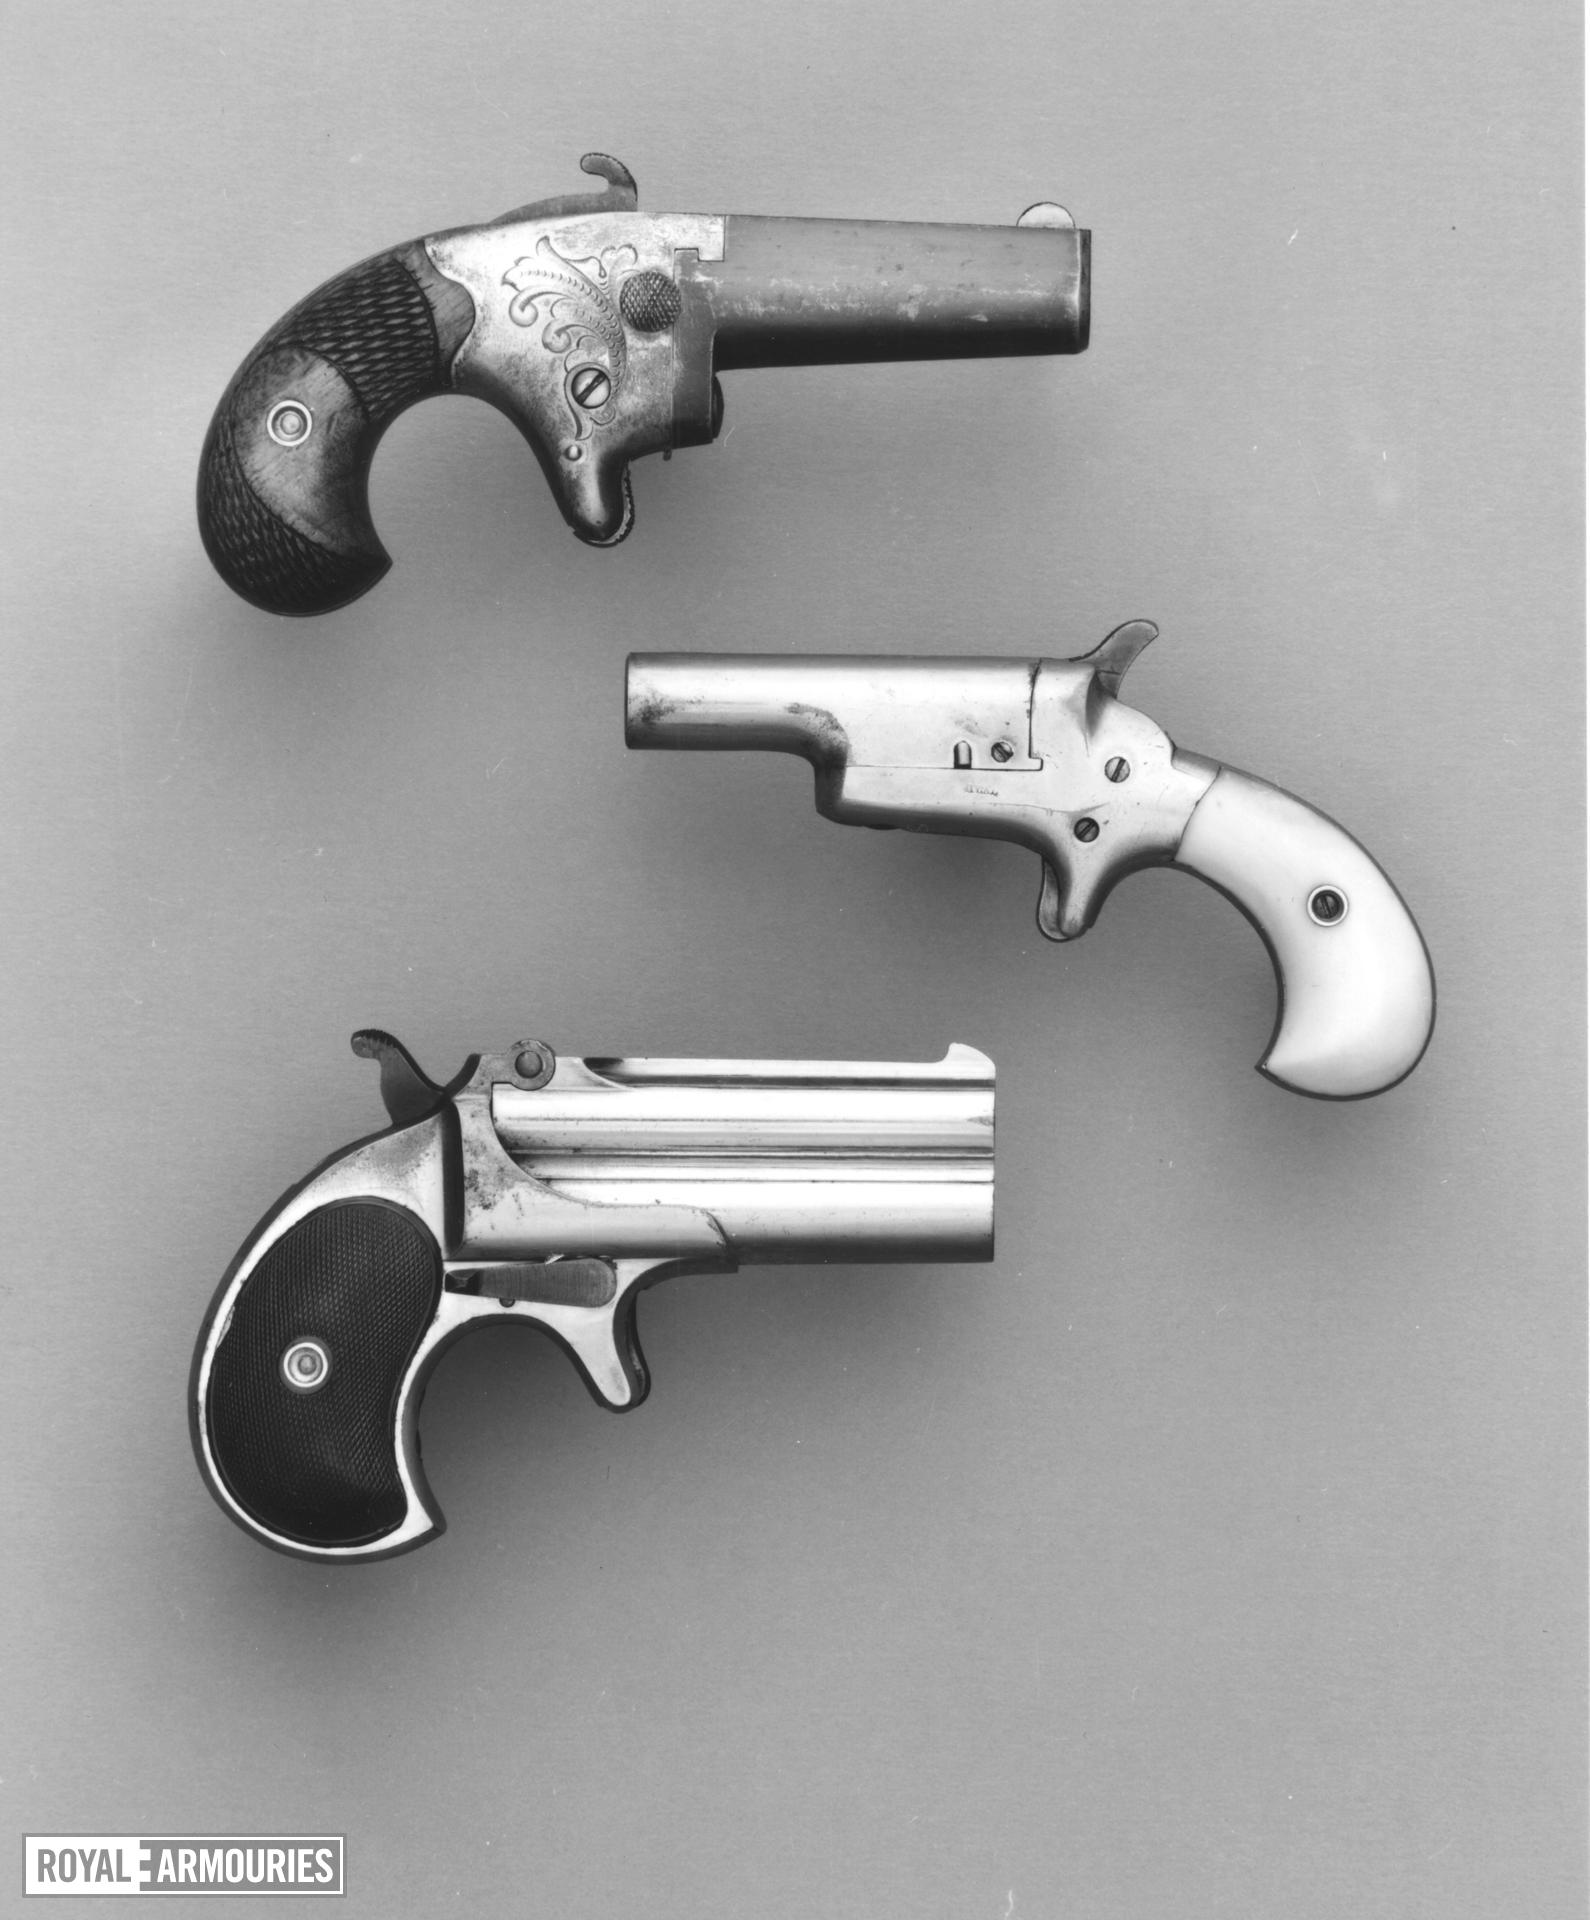 Rimfire two-shot derringer - Remington